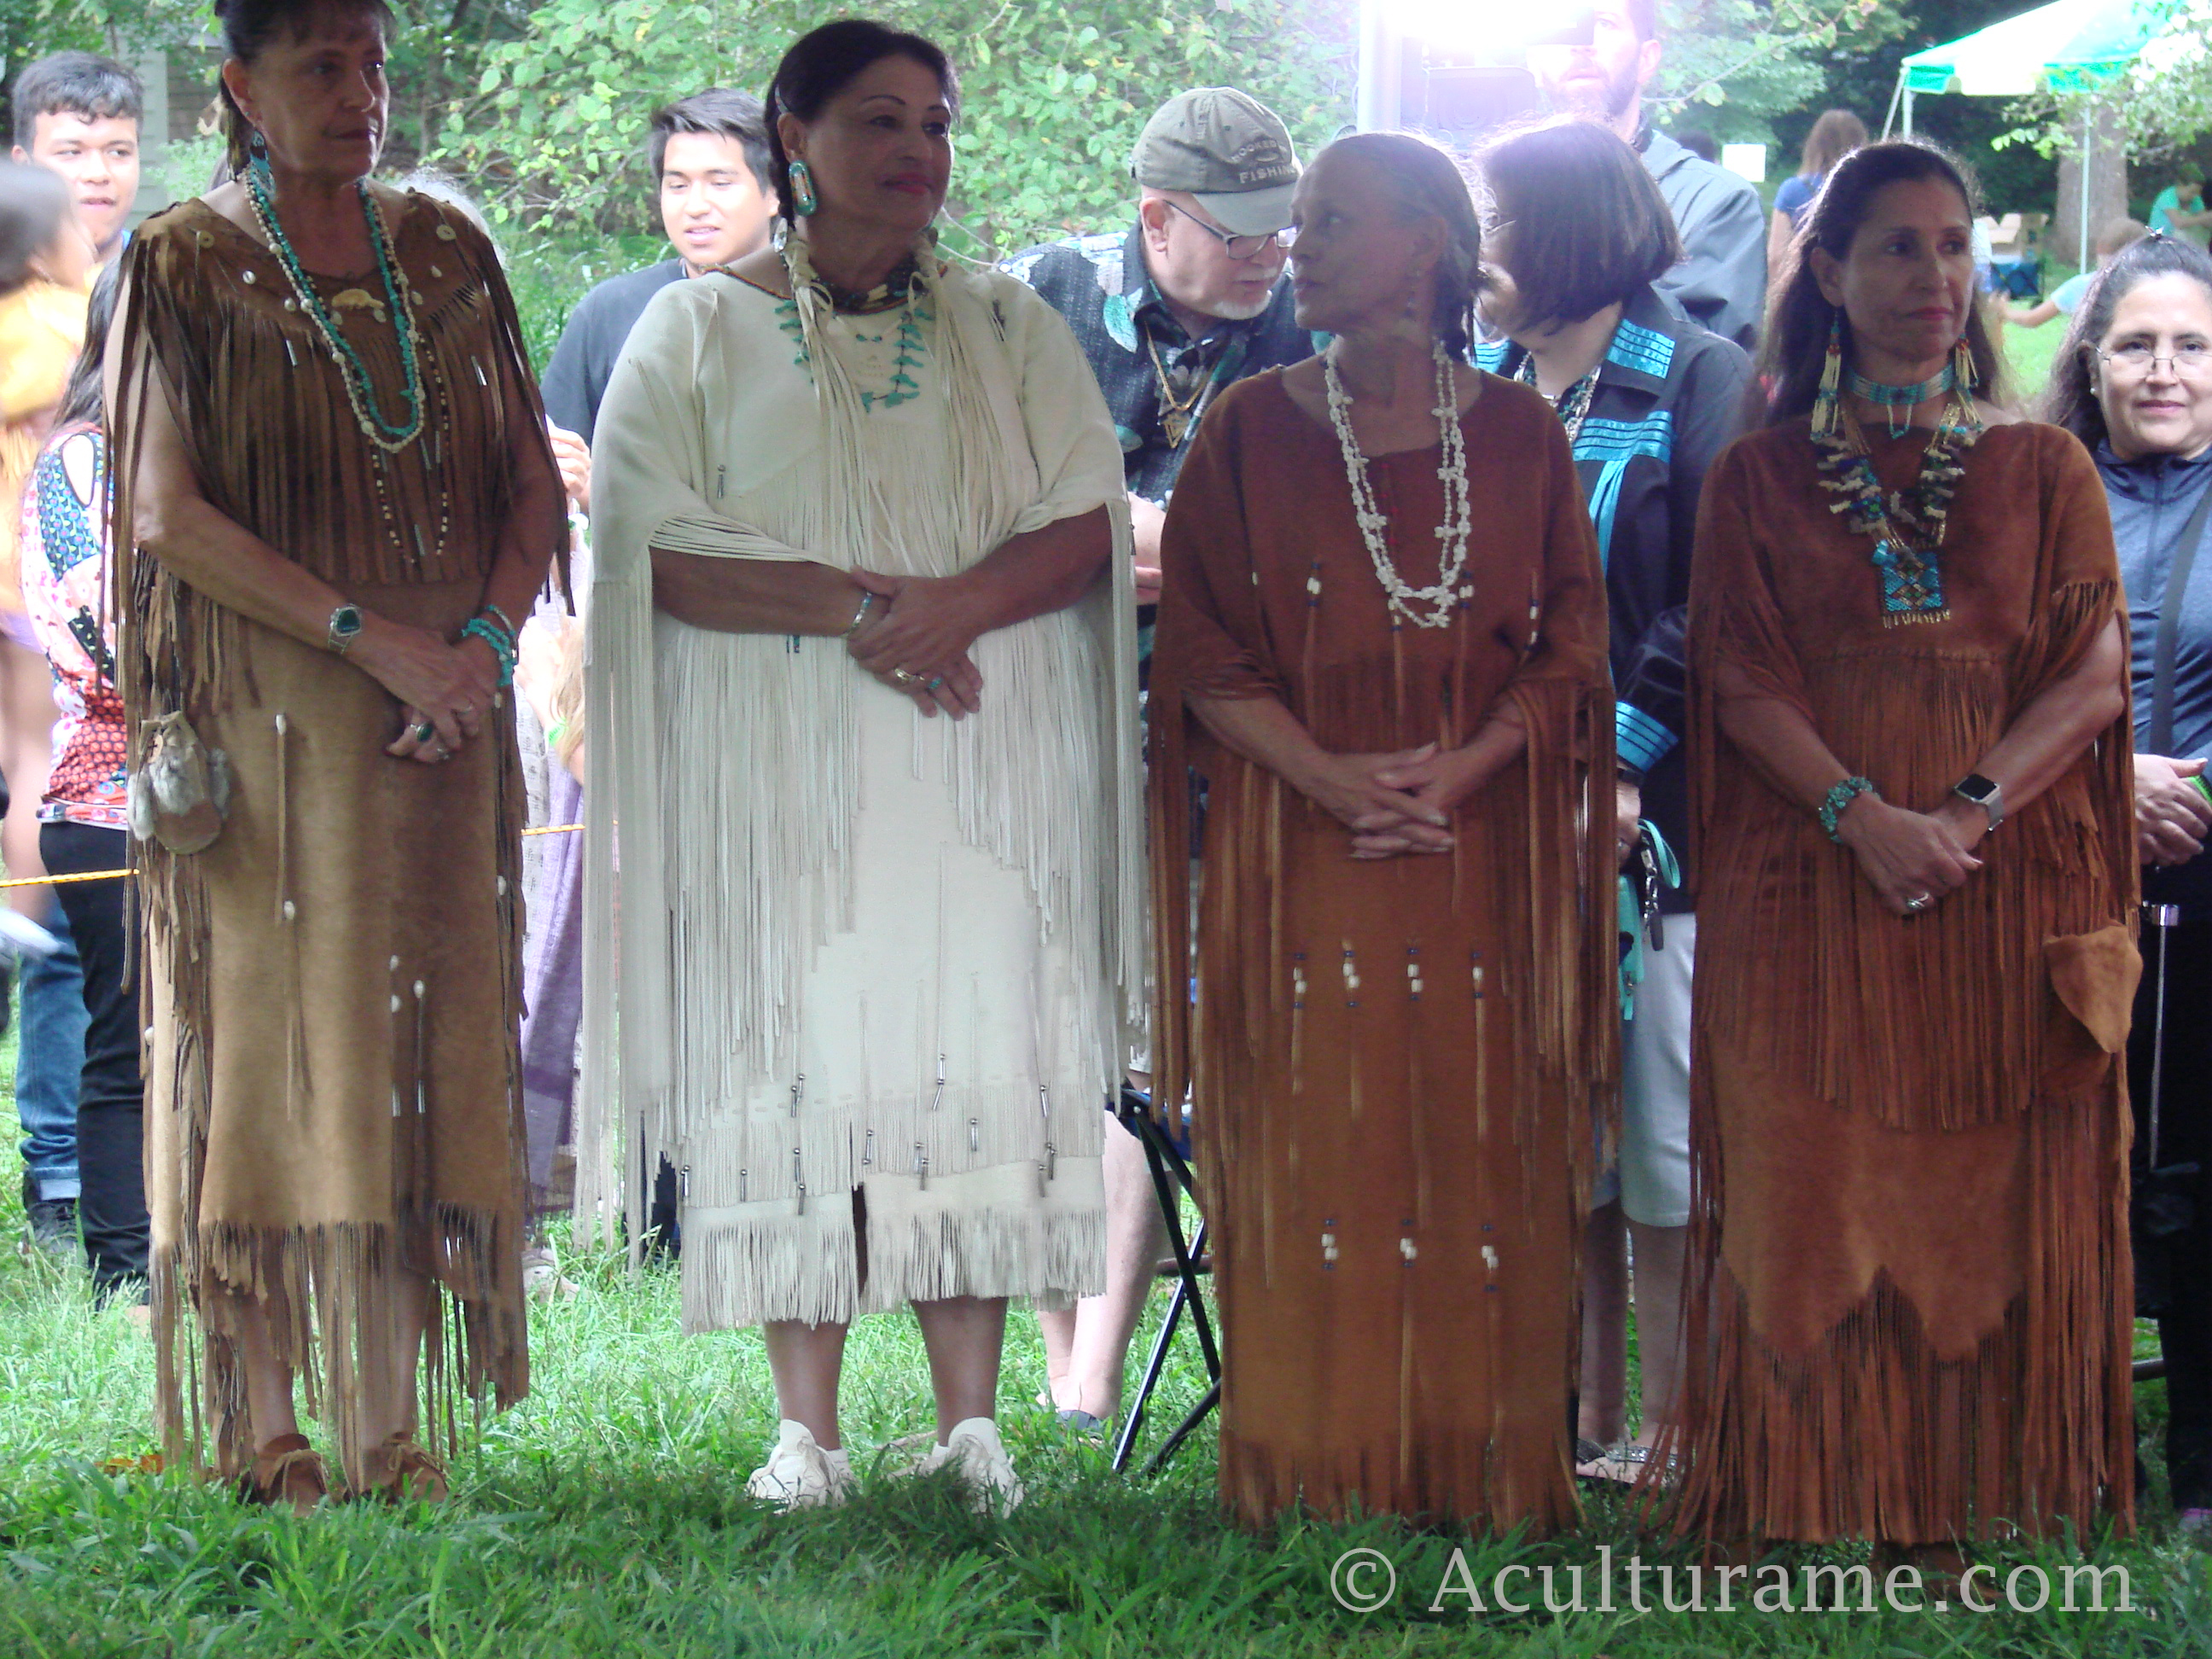 Aculturame's 6th Anniversary and the Virginia Indian Festival